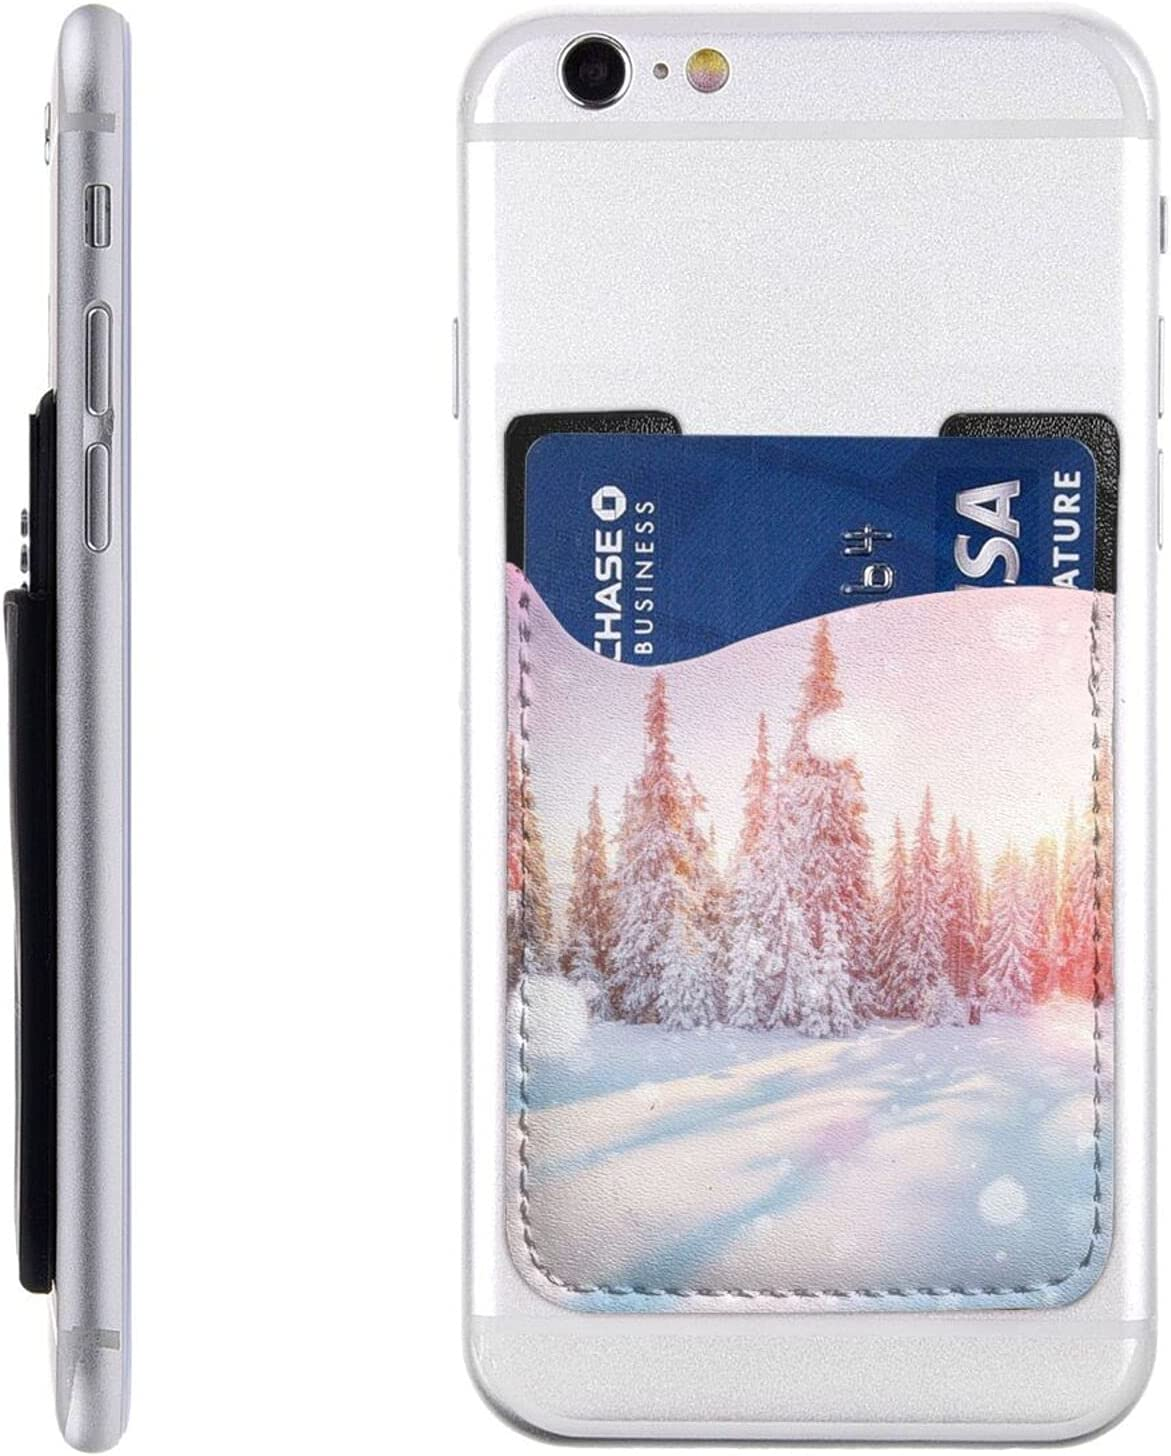 Pine Superlatite Credence Trees and Snow Phone Card Cell W Holder On Stick